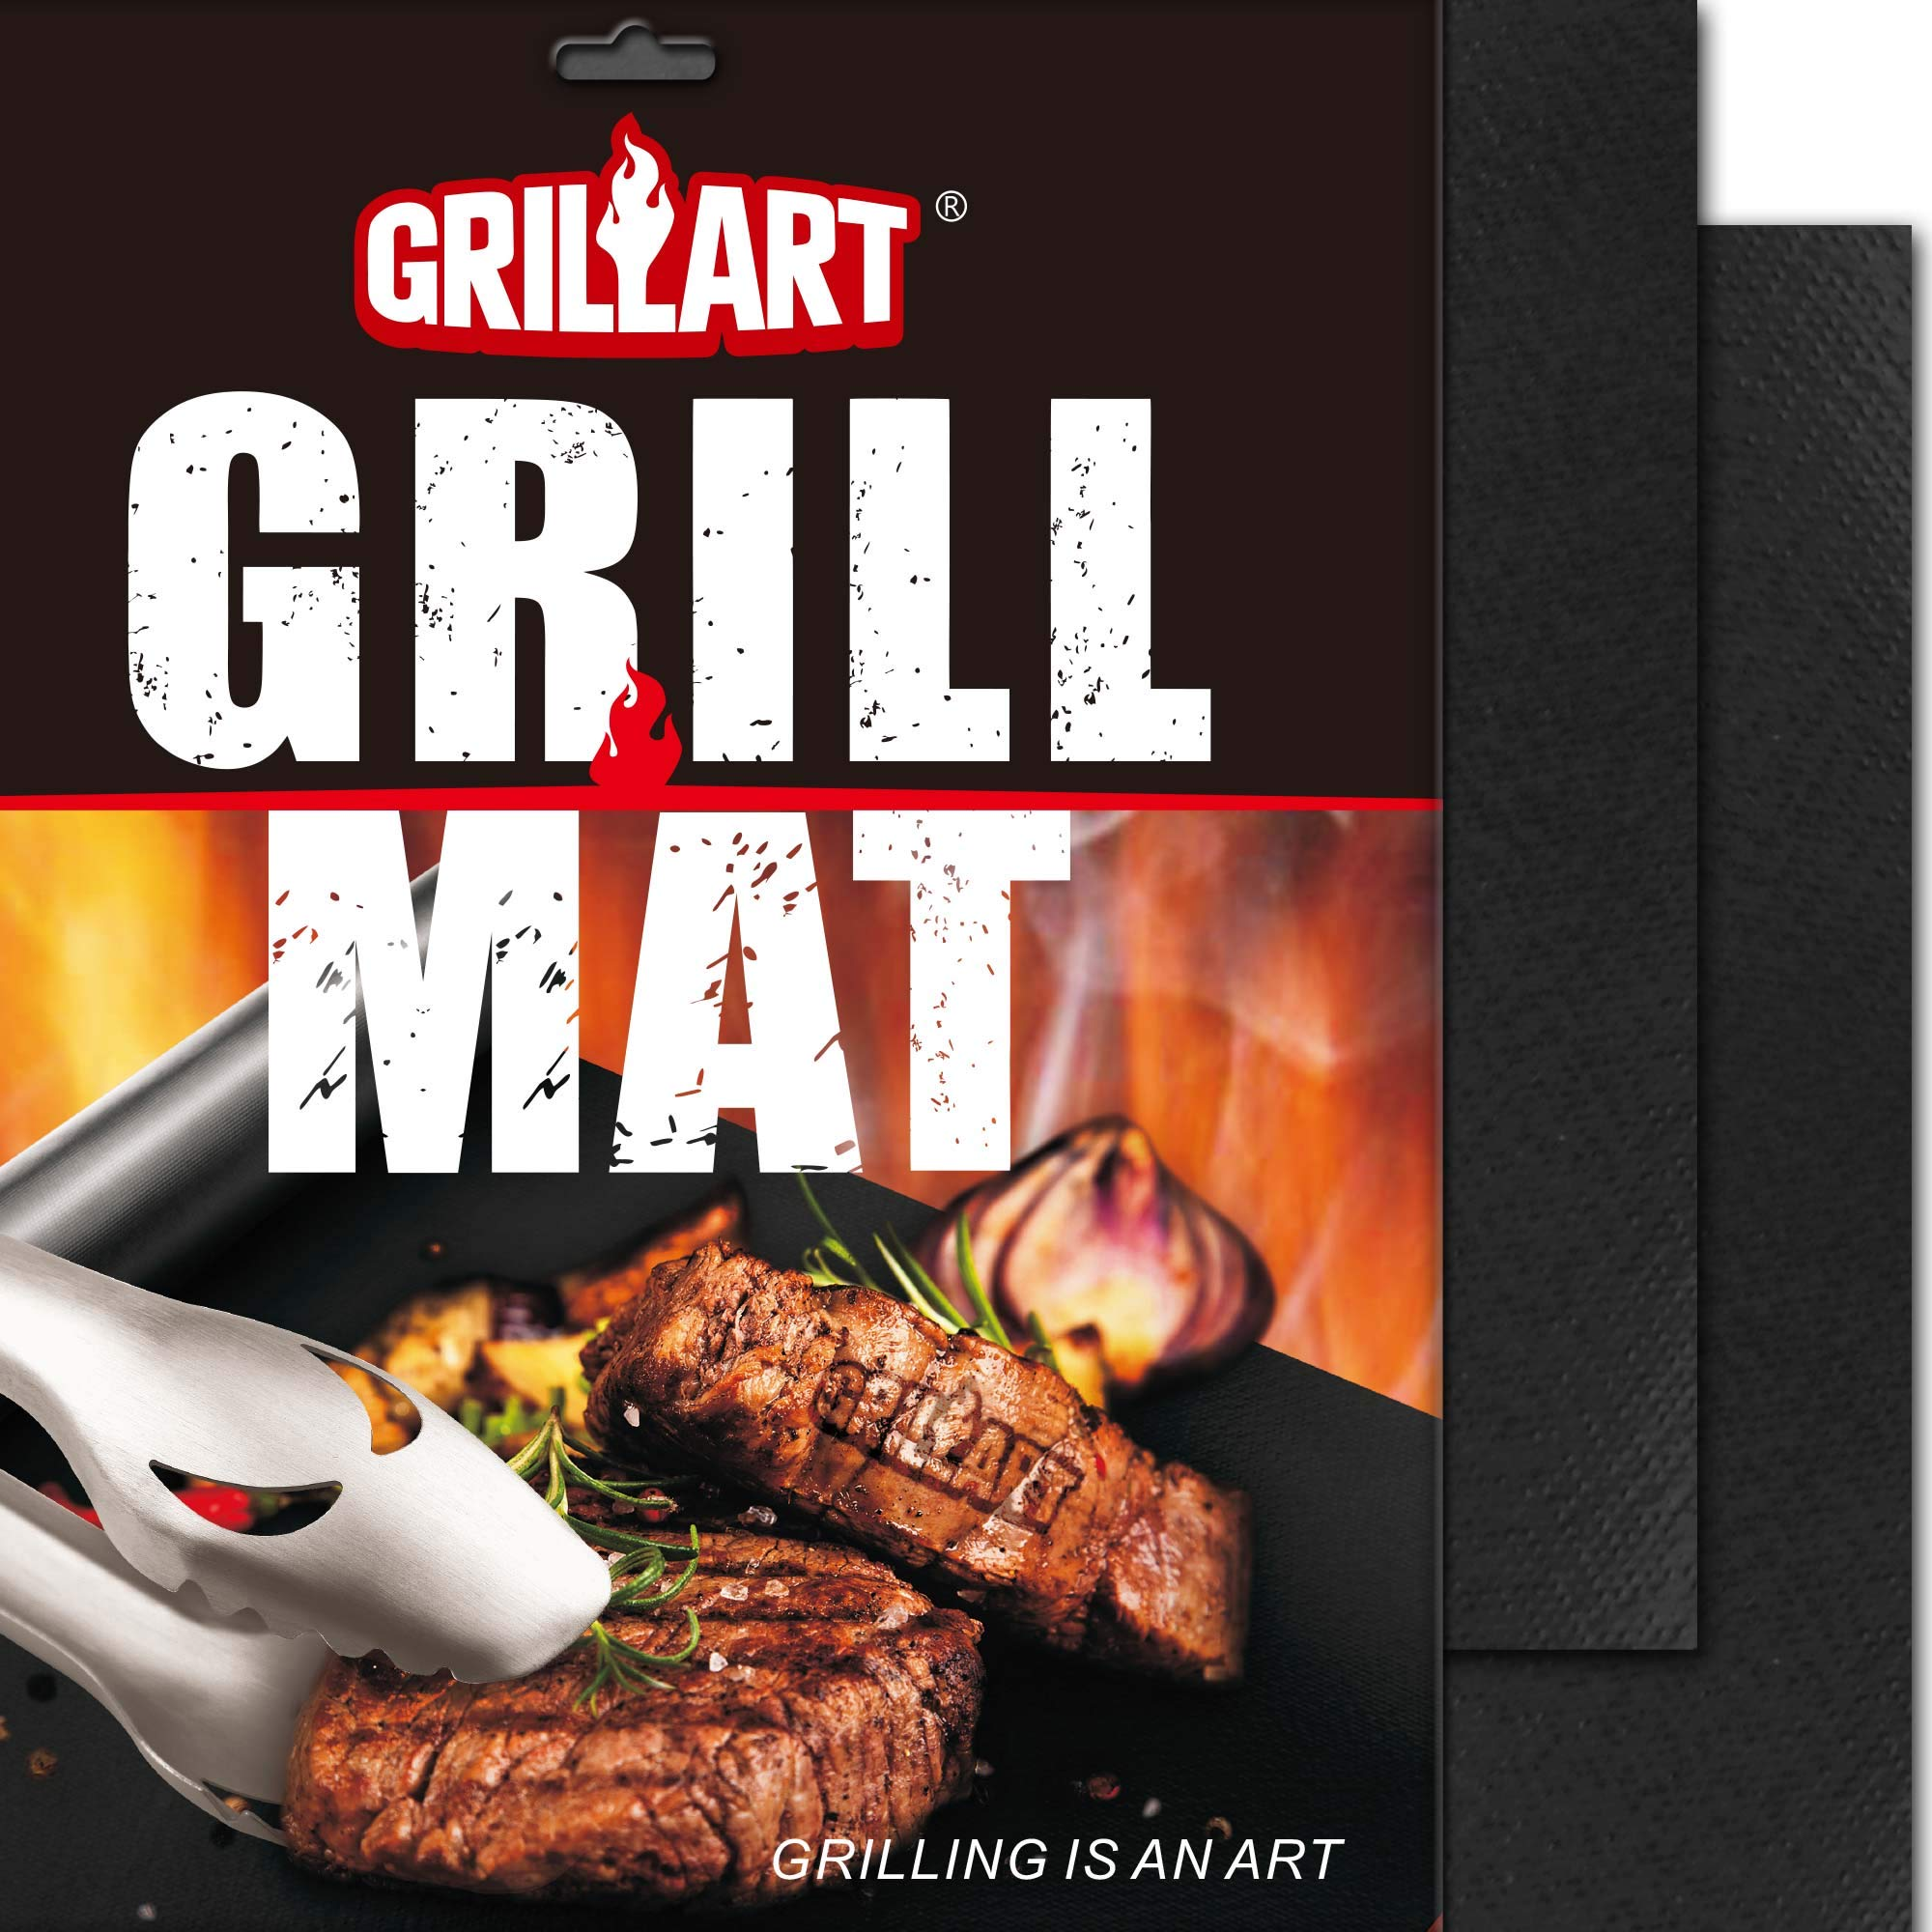 GRILLART BBQ Grill Mat - 100% Non-Stick 600 Degree Heavy Duty Mats (Set of 2) - Reusable, Easy to Clean Barbecue Grilling Accessories - Works on Electric Grill Gas Charcoal BBQ by GRILLART